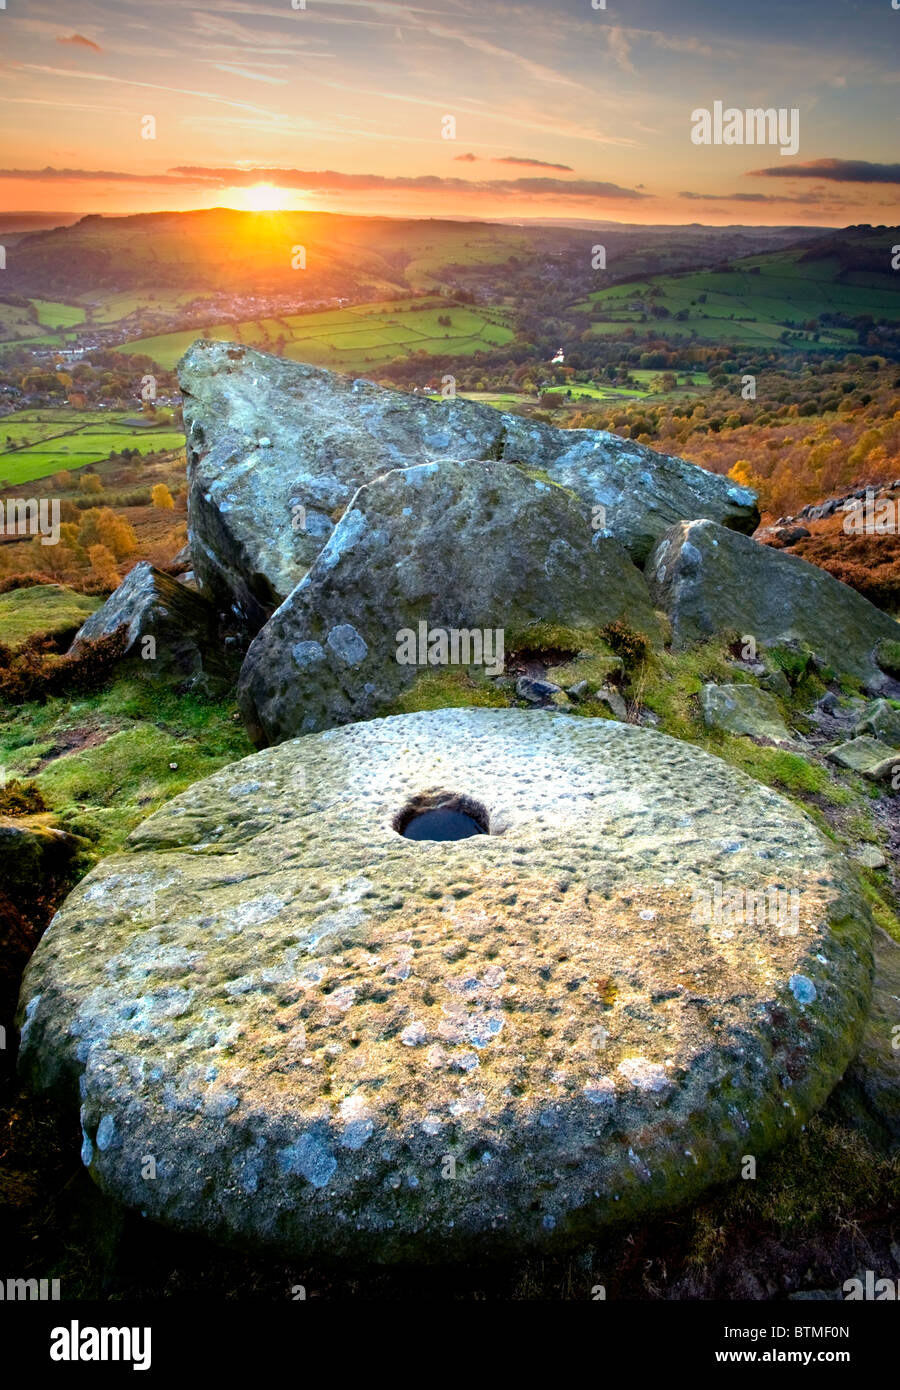 Abandoned Millstone at Sunset on Curbar Edge, Peak District National Park, Derbyshire, England, UK - Stock Image